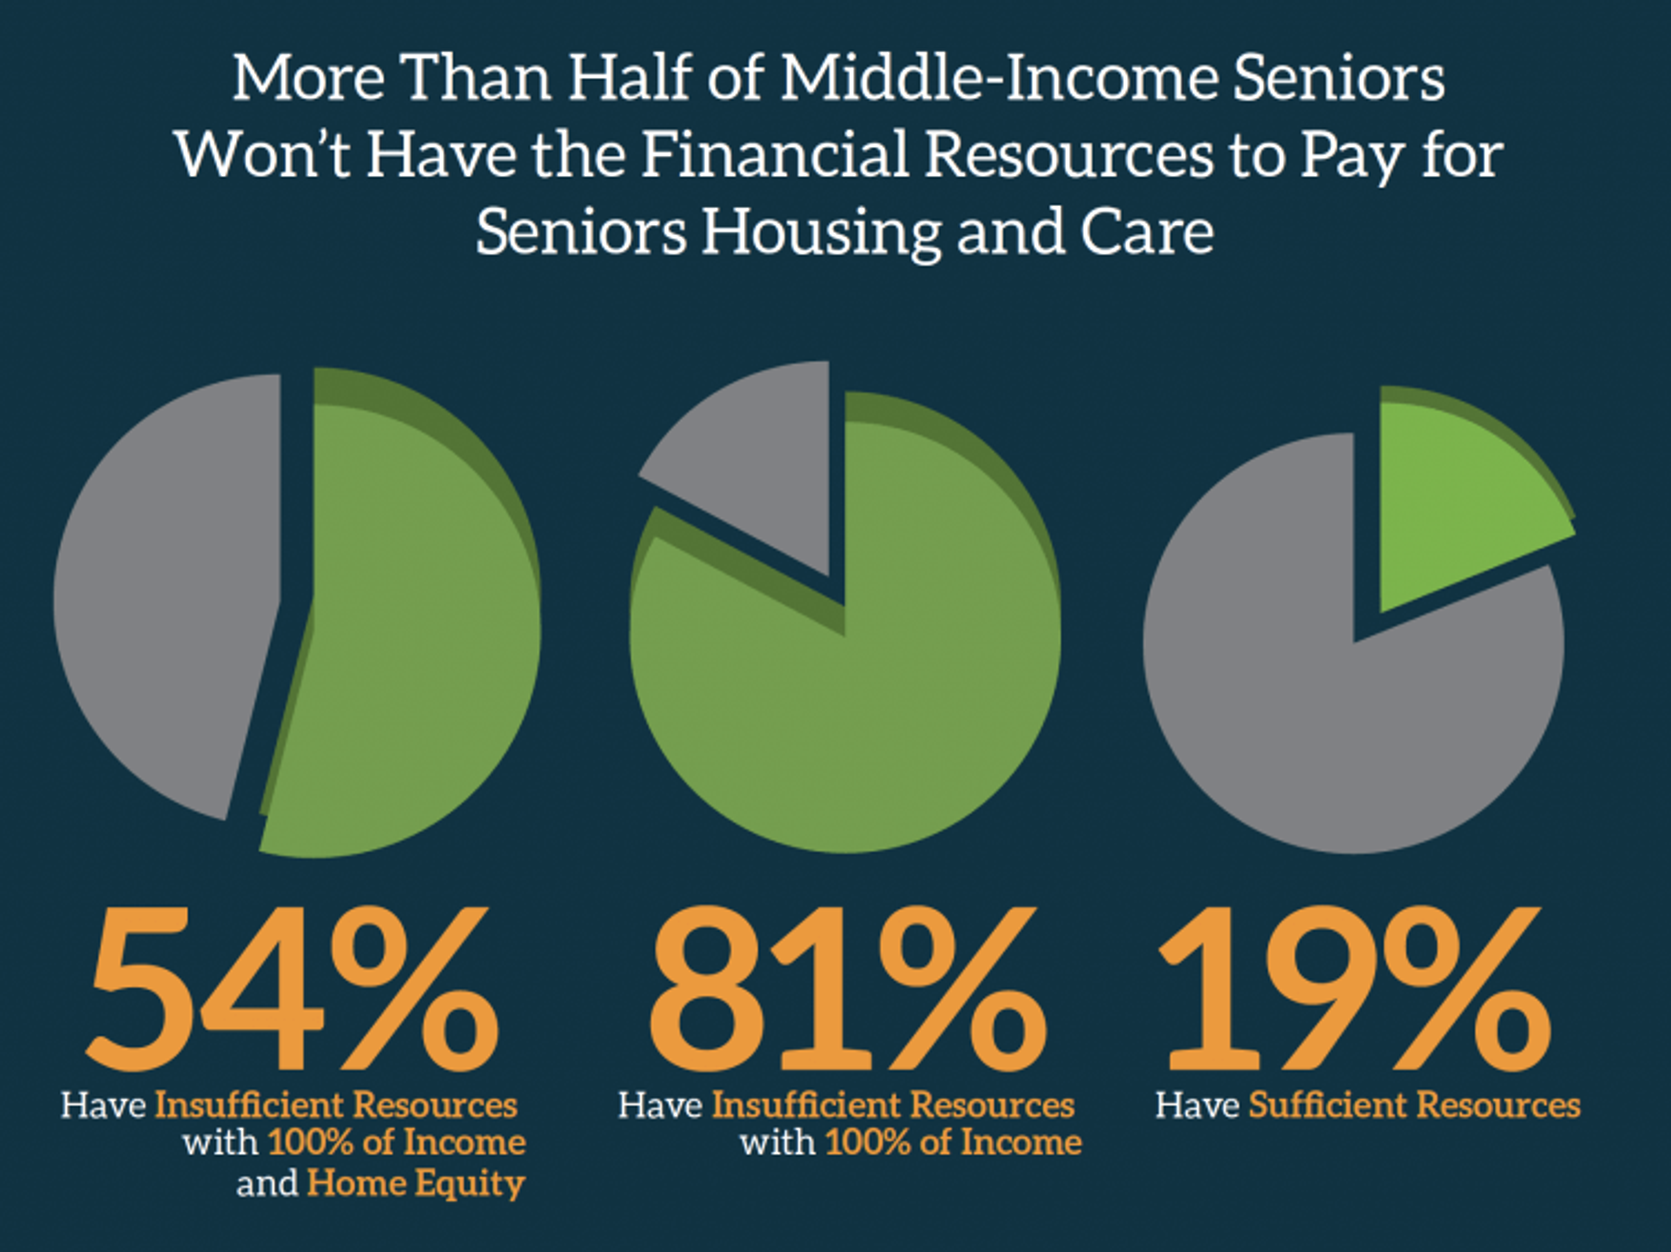 54% of middle-income Americans age 75 or older won't be able to afford such housing (independent living, assisted living, memory care, skilled nursing and post-acute care facilities) in 2029.